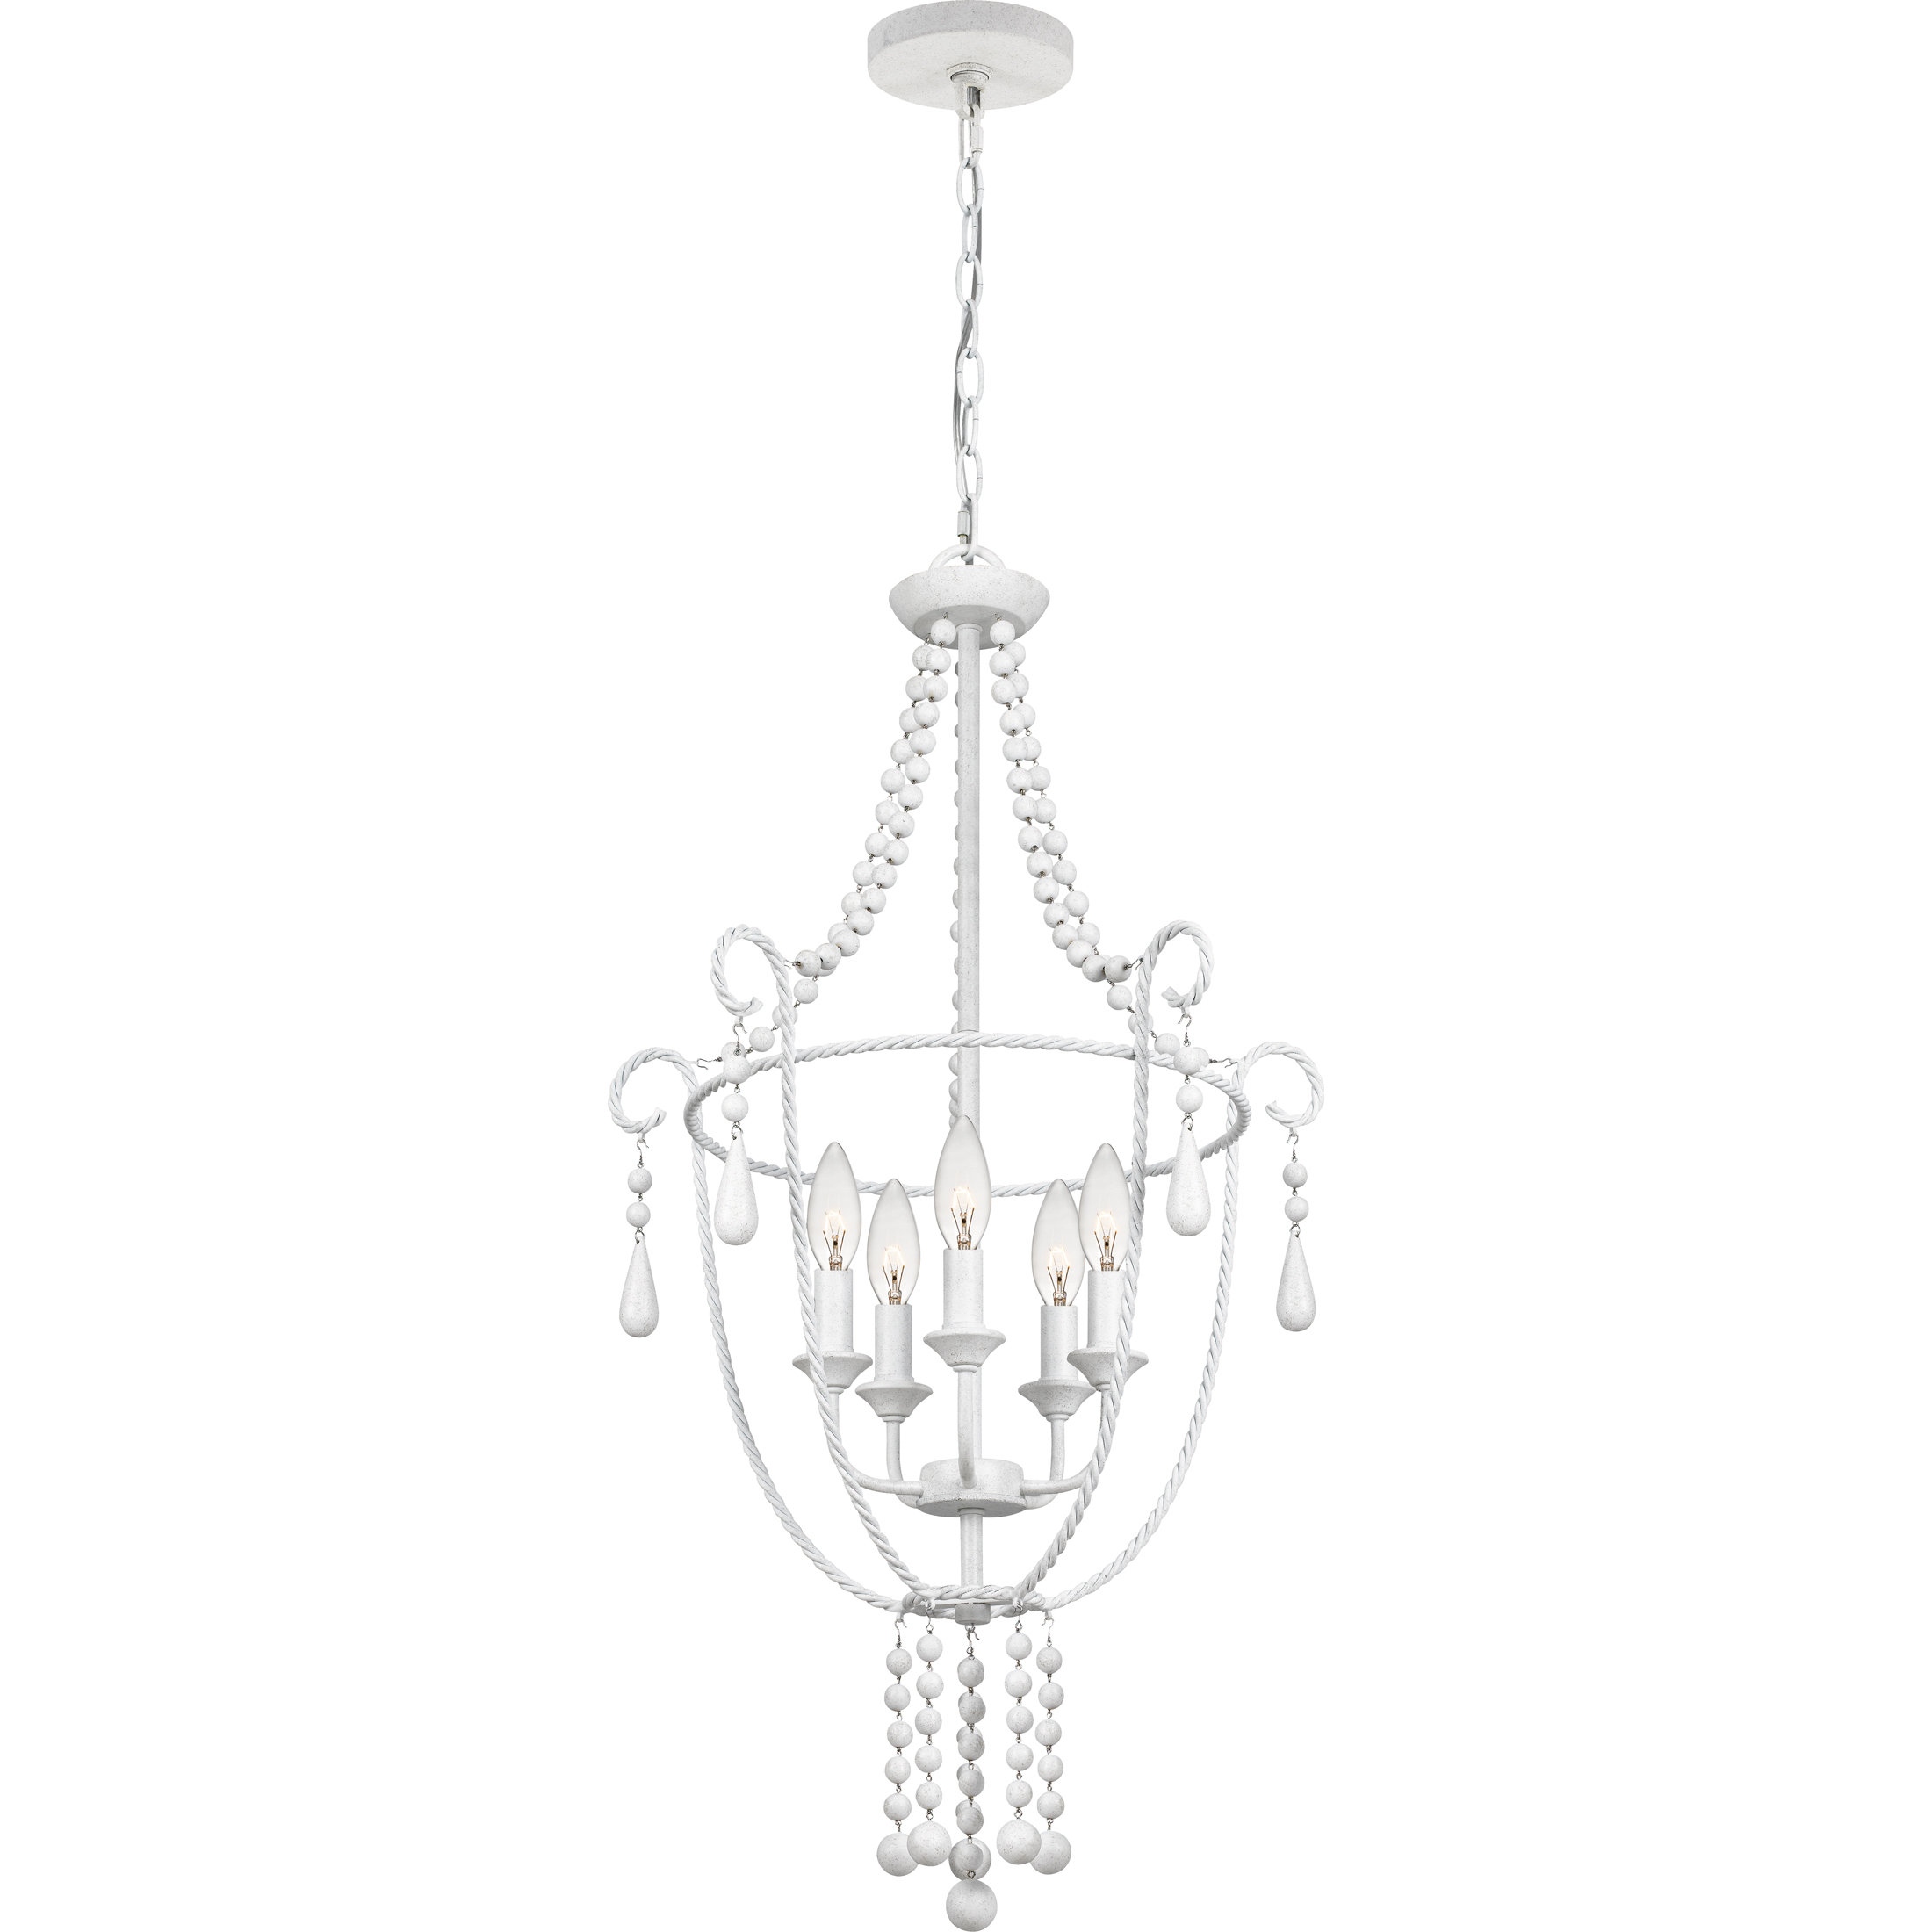 Widely Used Statham 5 Light Candle Style Chandelier With Regard To Florentina 5 Light Candle Style Chandeliers (View 16 of 20)